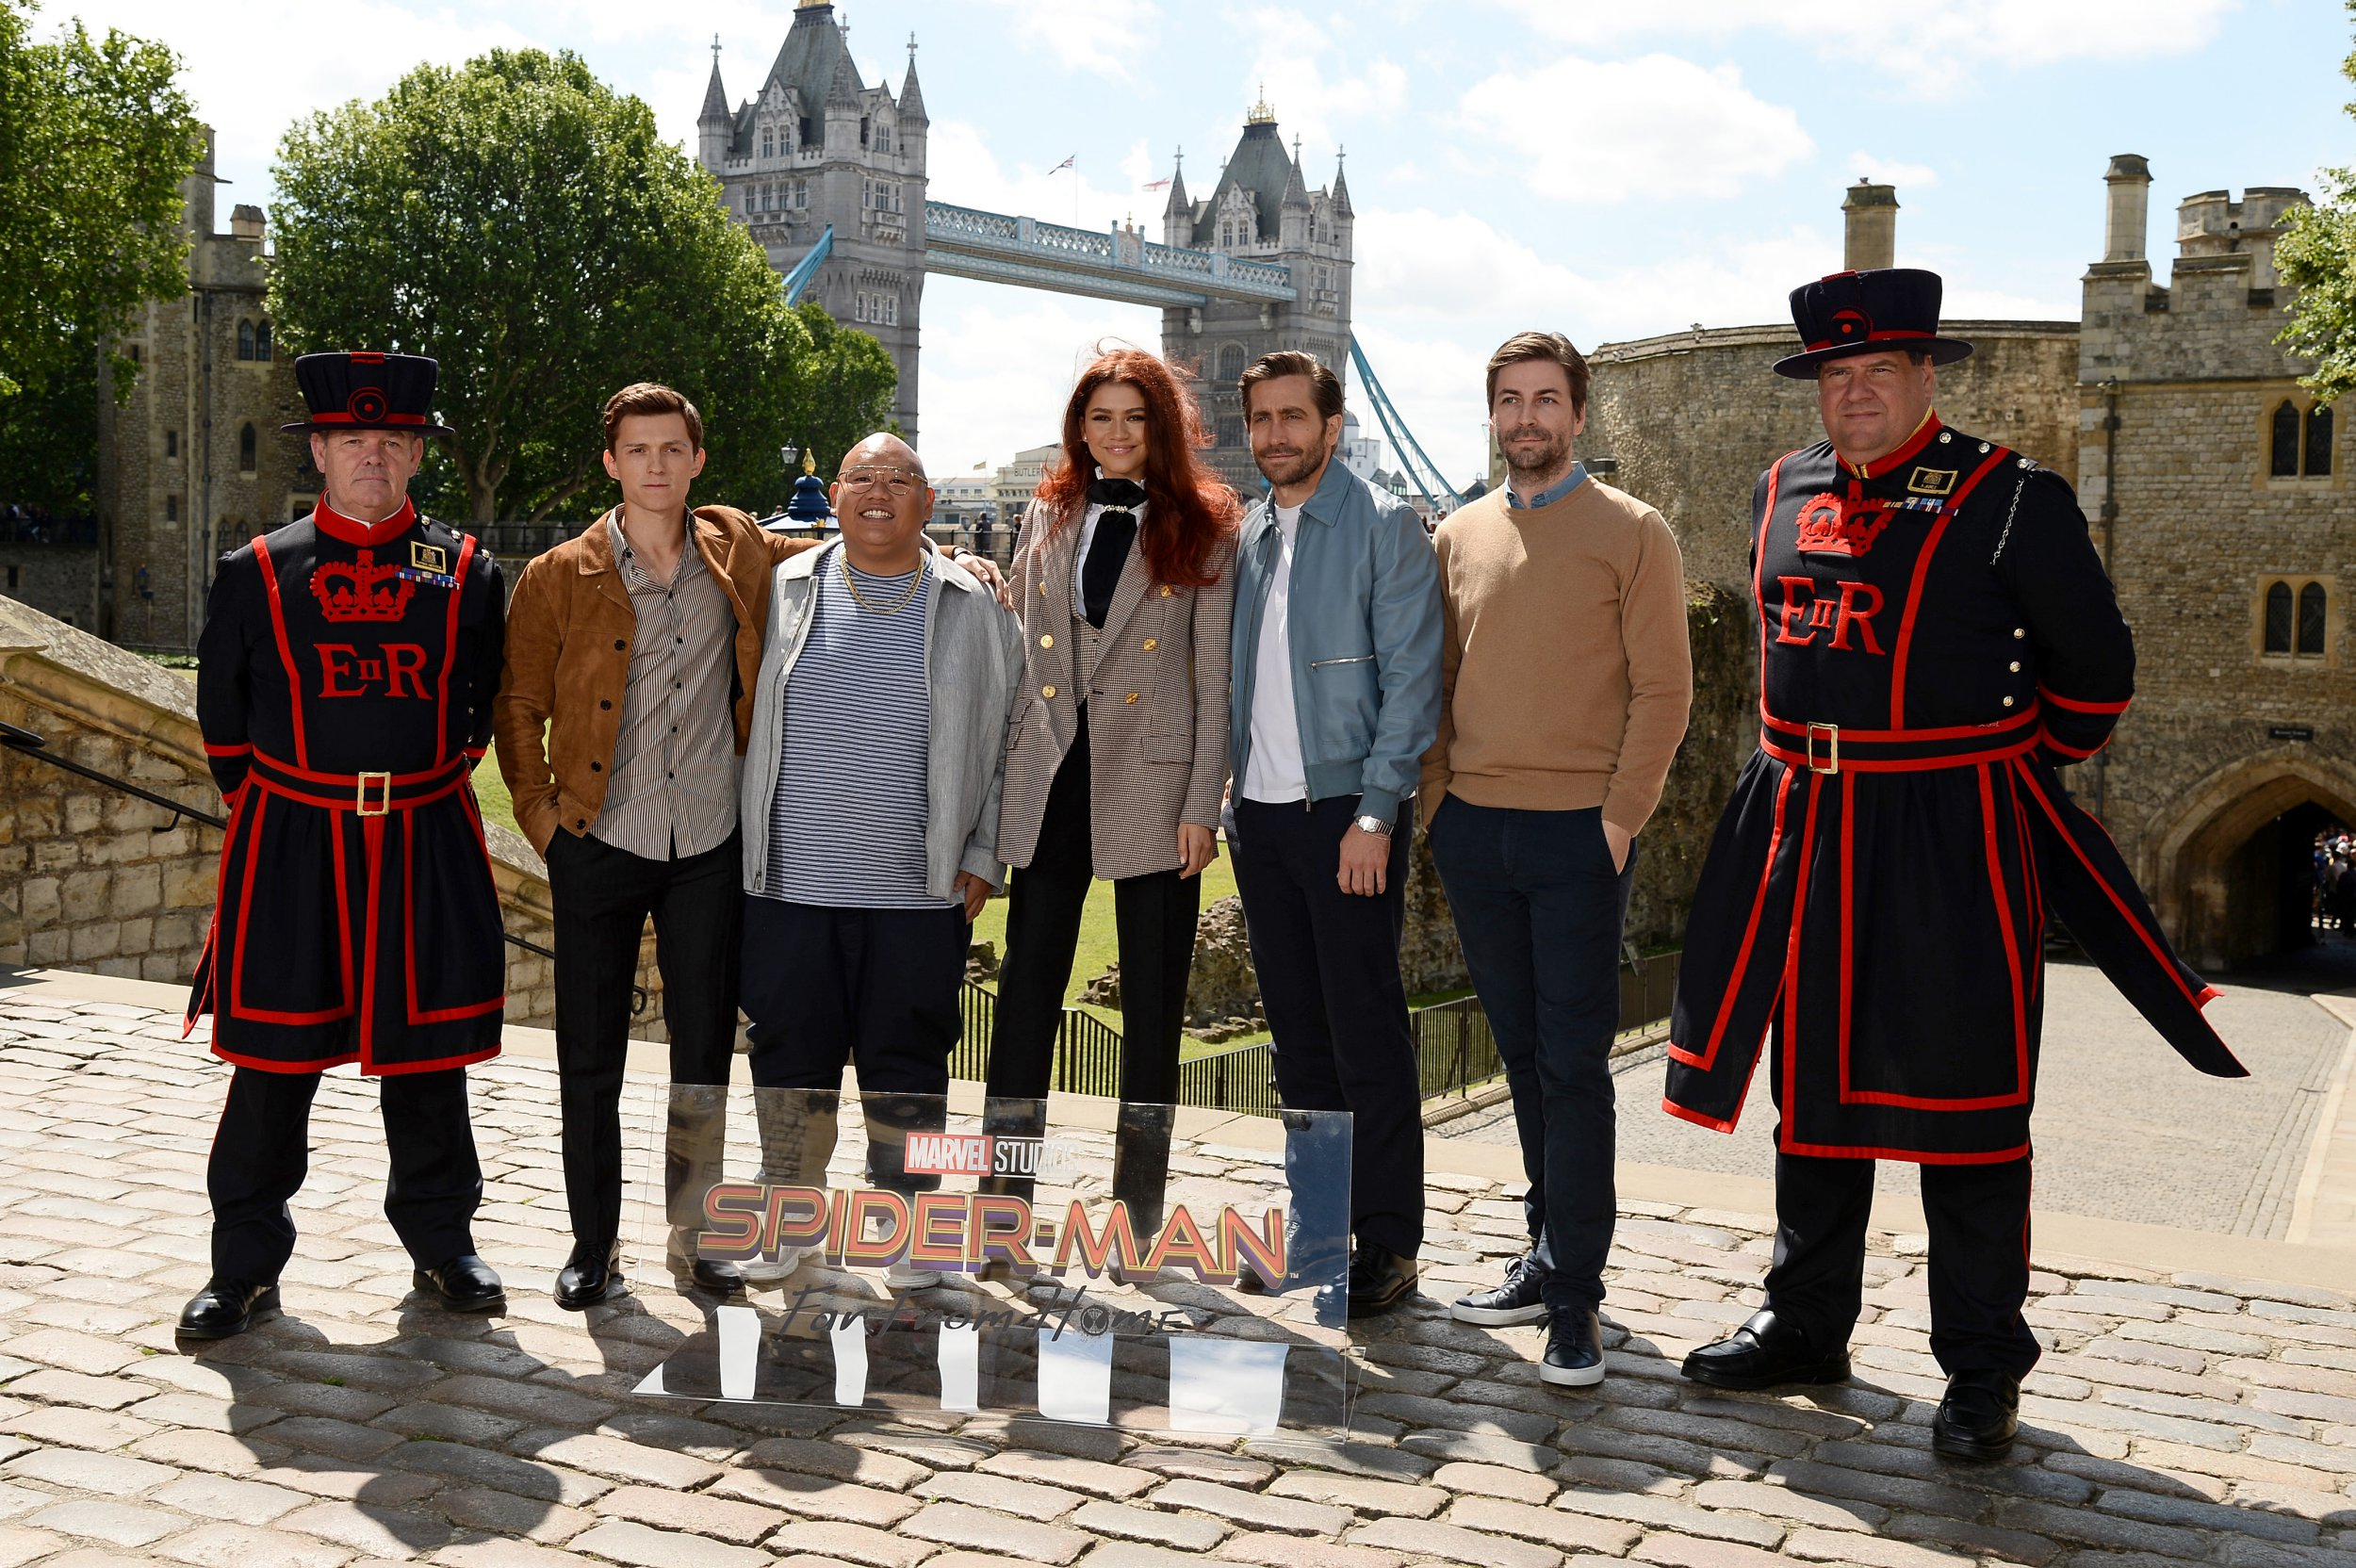 LONDON, ENGLAND - JUNE 17: A Yeoman Warder, Tom Holland (Peter Parker / Spiderman), Jacob Batalon (Ned Leeds), Zendaya (MJ), Jake Gyllenhaal (Quentin Beck / Mysterio), Director Jon Watts and A Yeoman Warder attend a Spider-Man: Far From Home London print call during Tower of London one of a films iconic locations on Jun 17, 2019 in London, England. (Photo by Jeff Spicer/Getty Images for Sony)